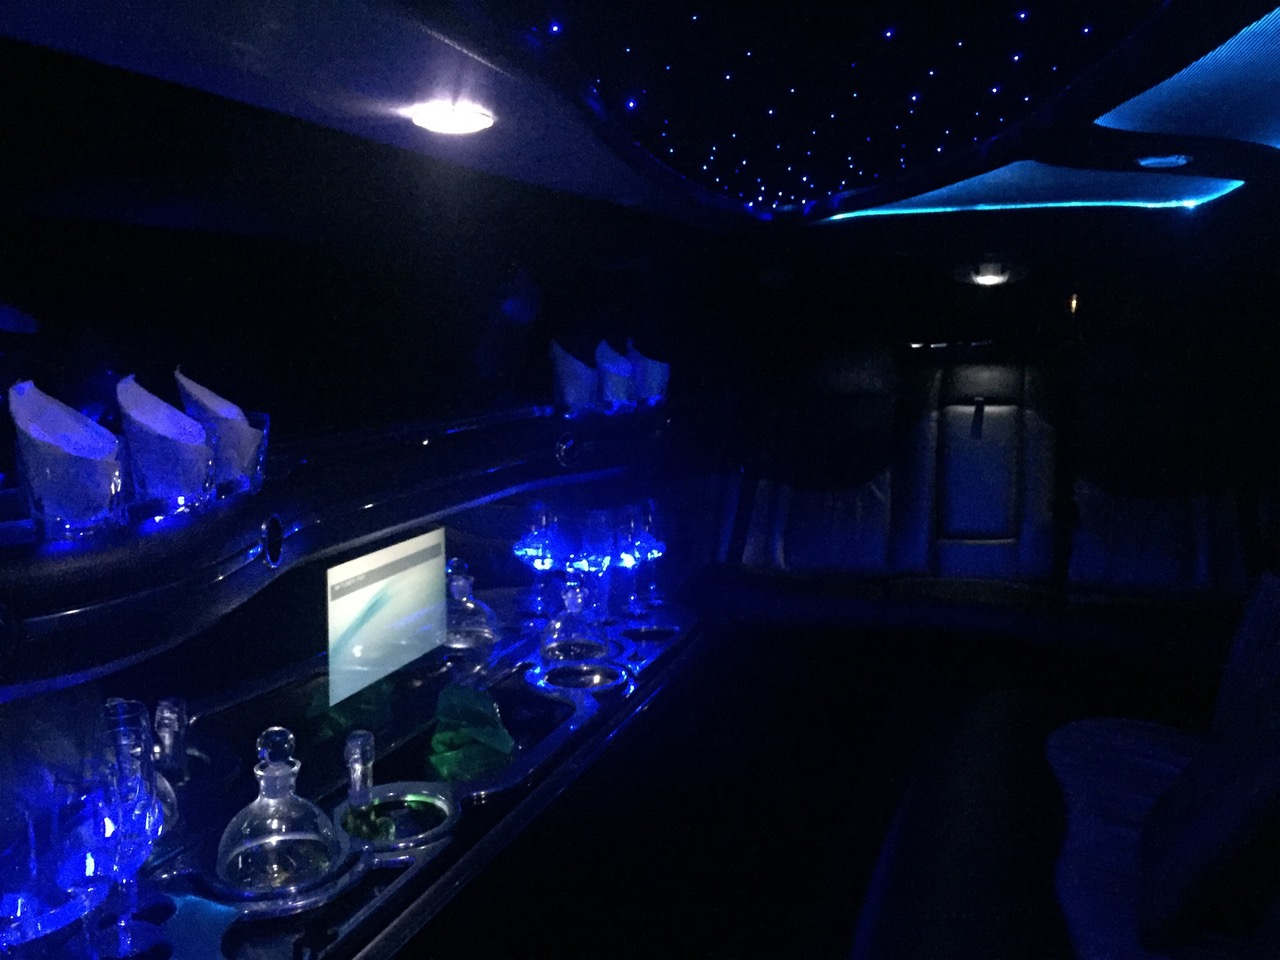 chrysler-limo-interior